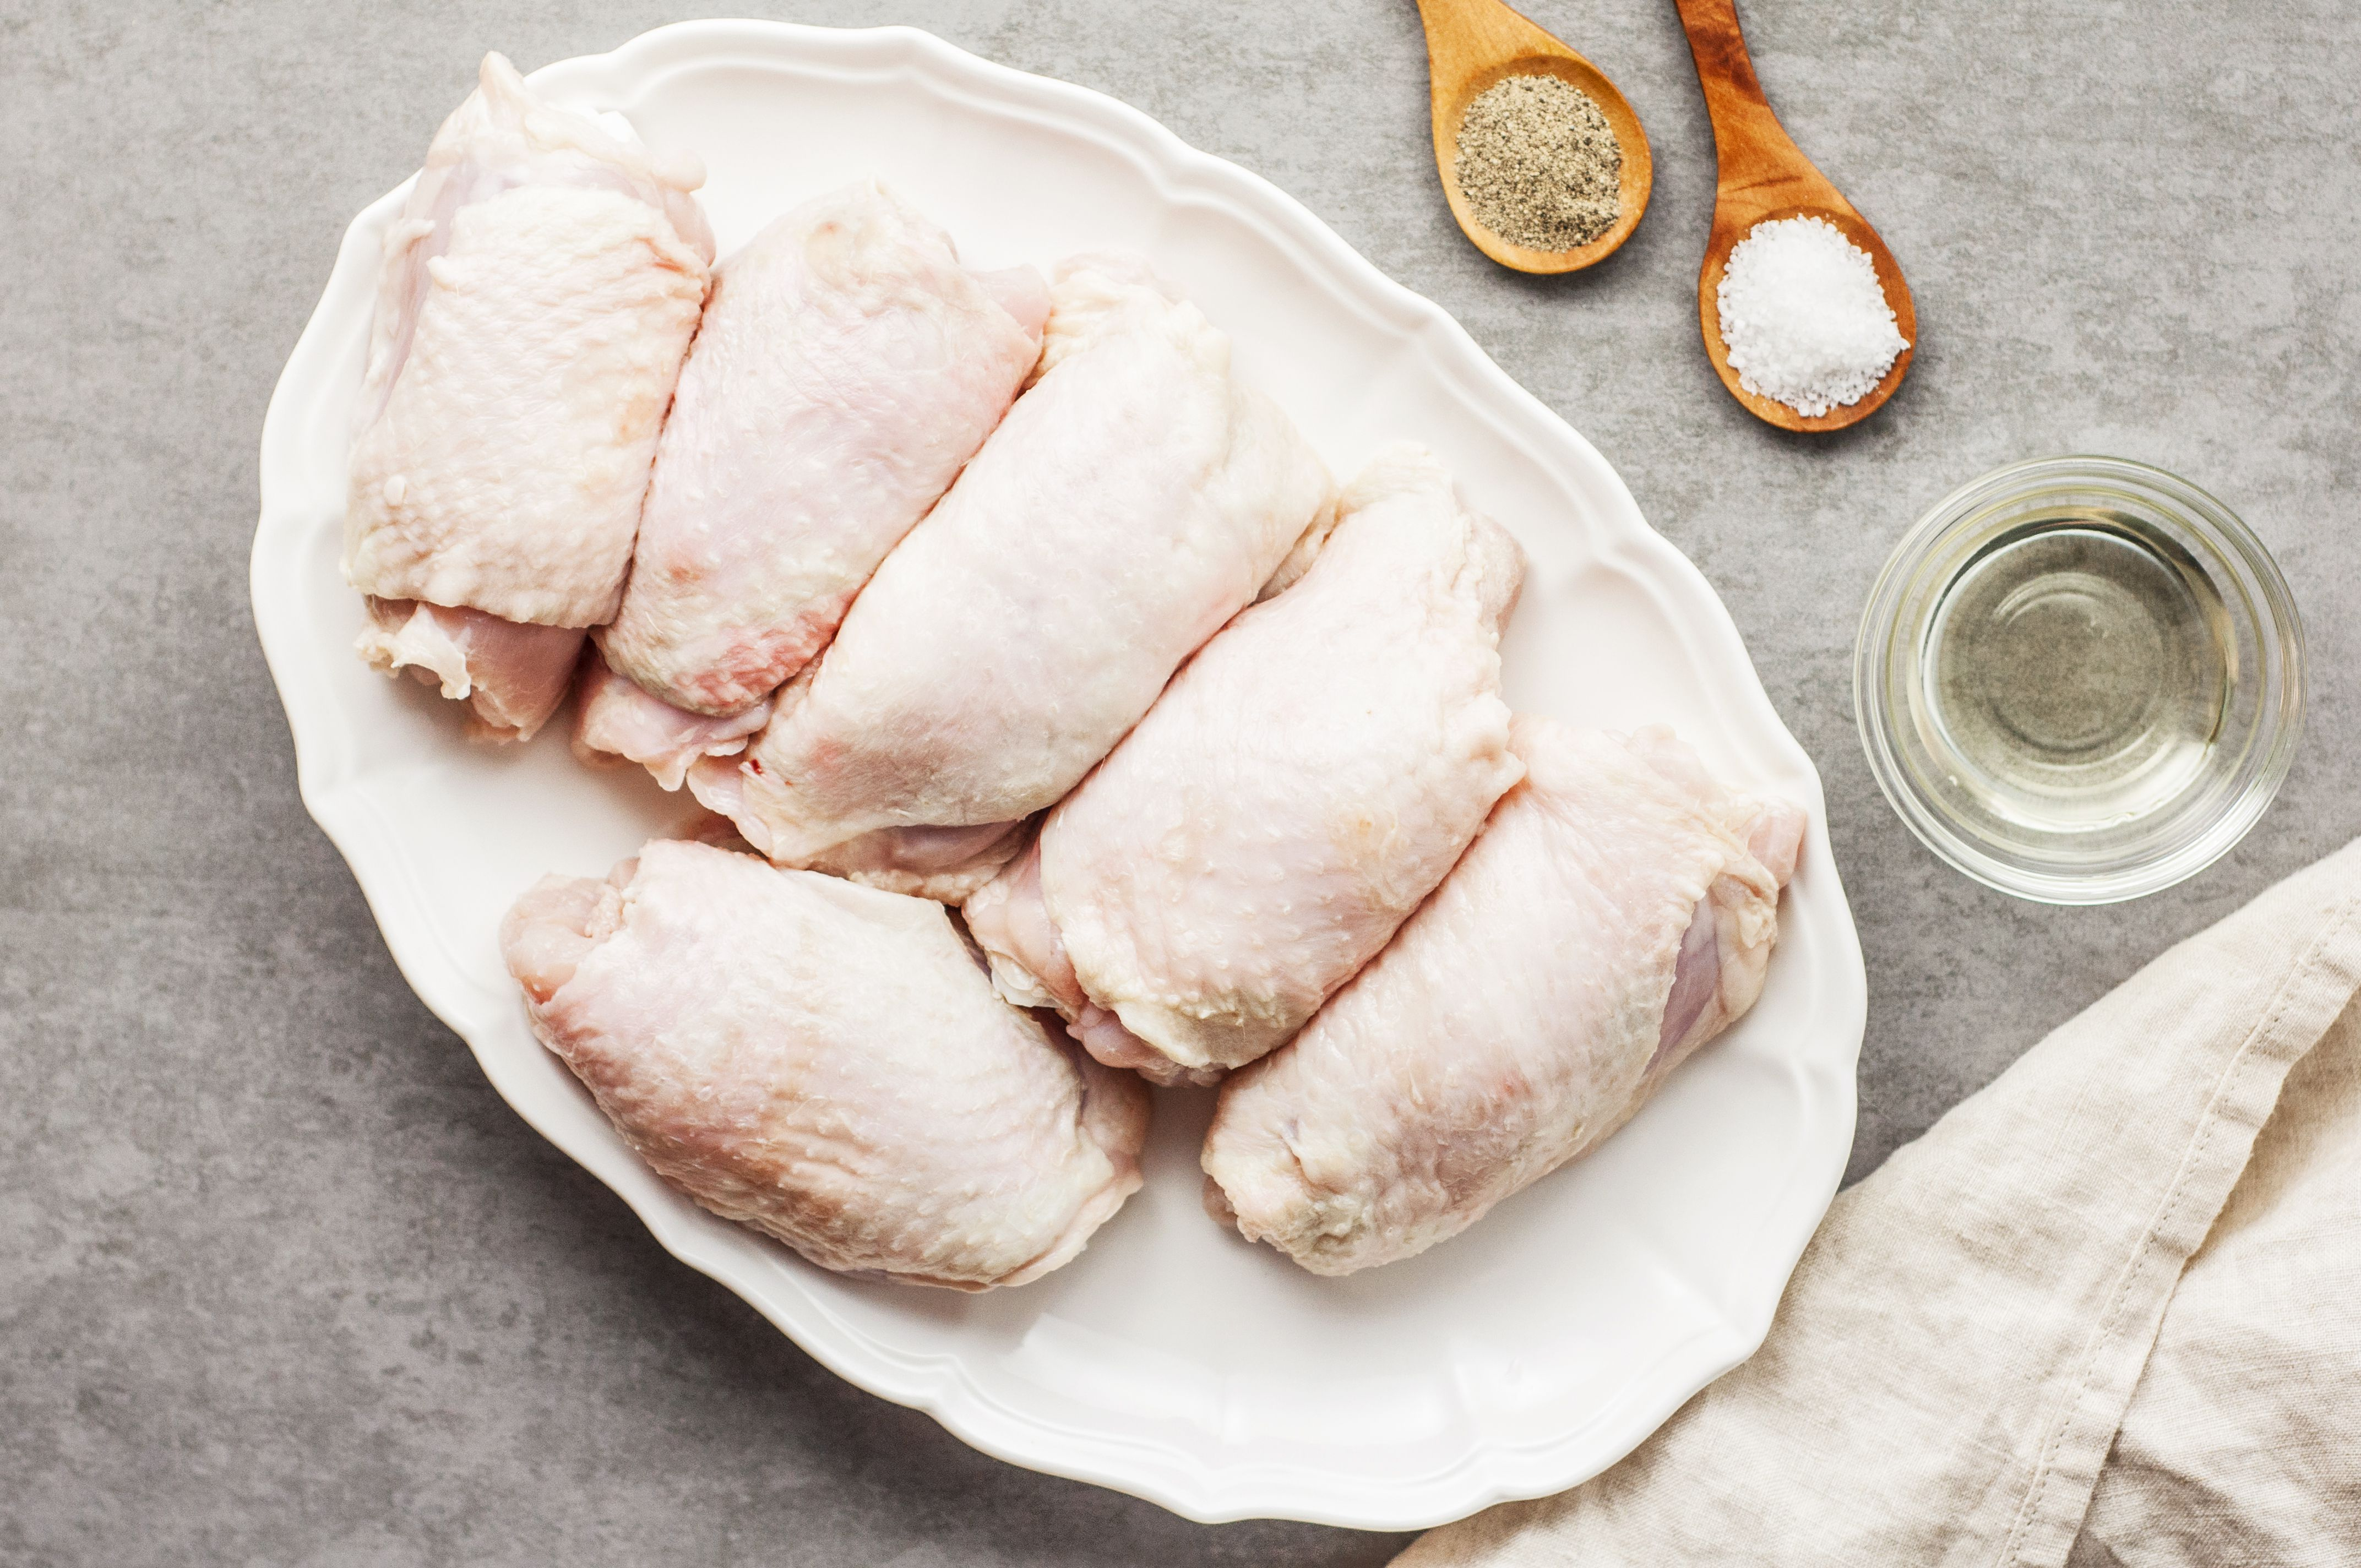 Ingredients for crispy skinned chicken thighs